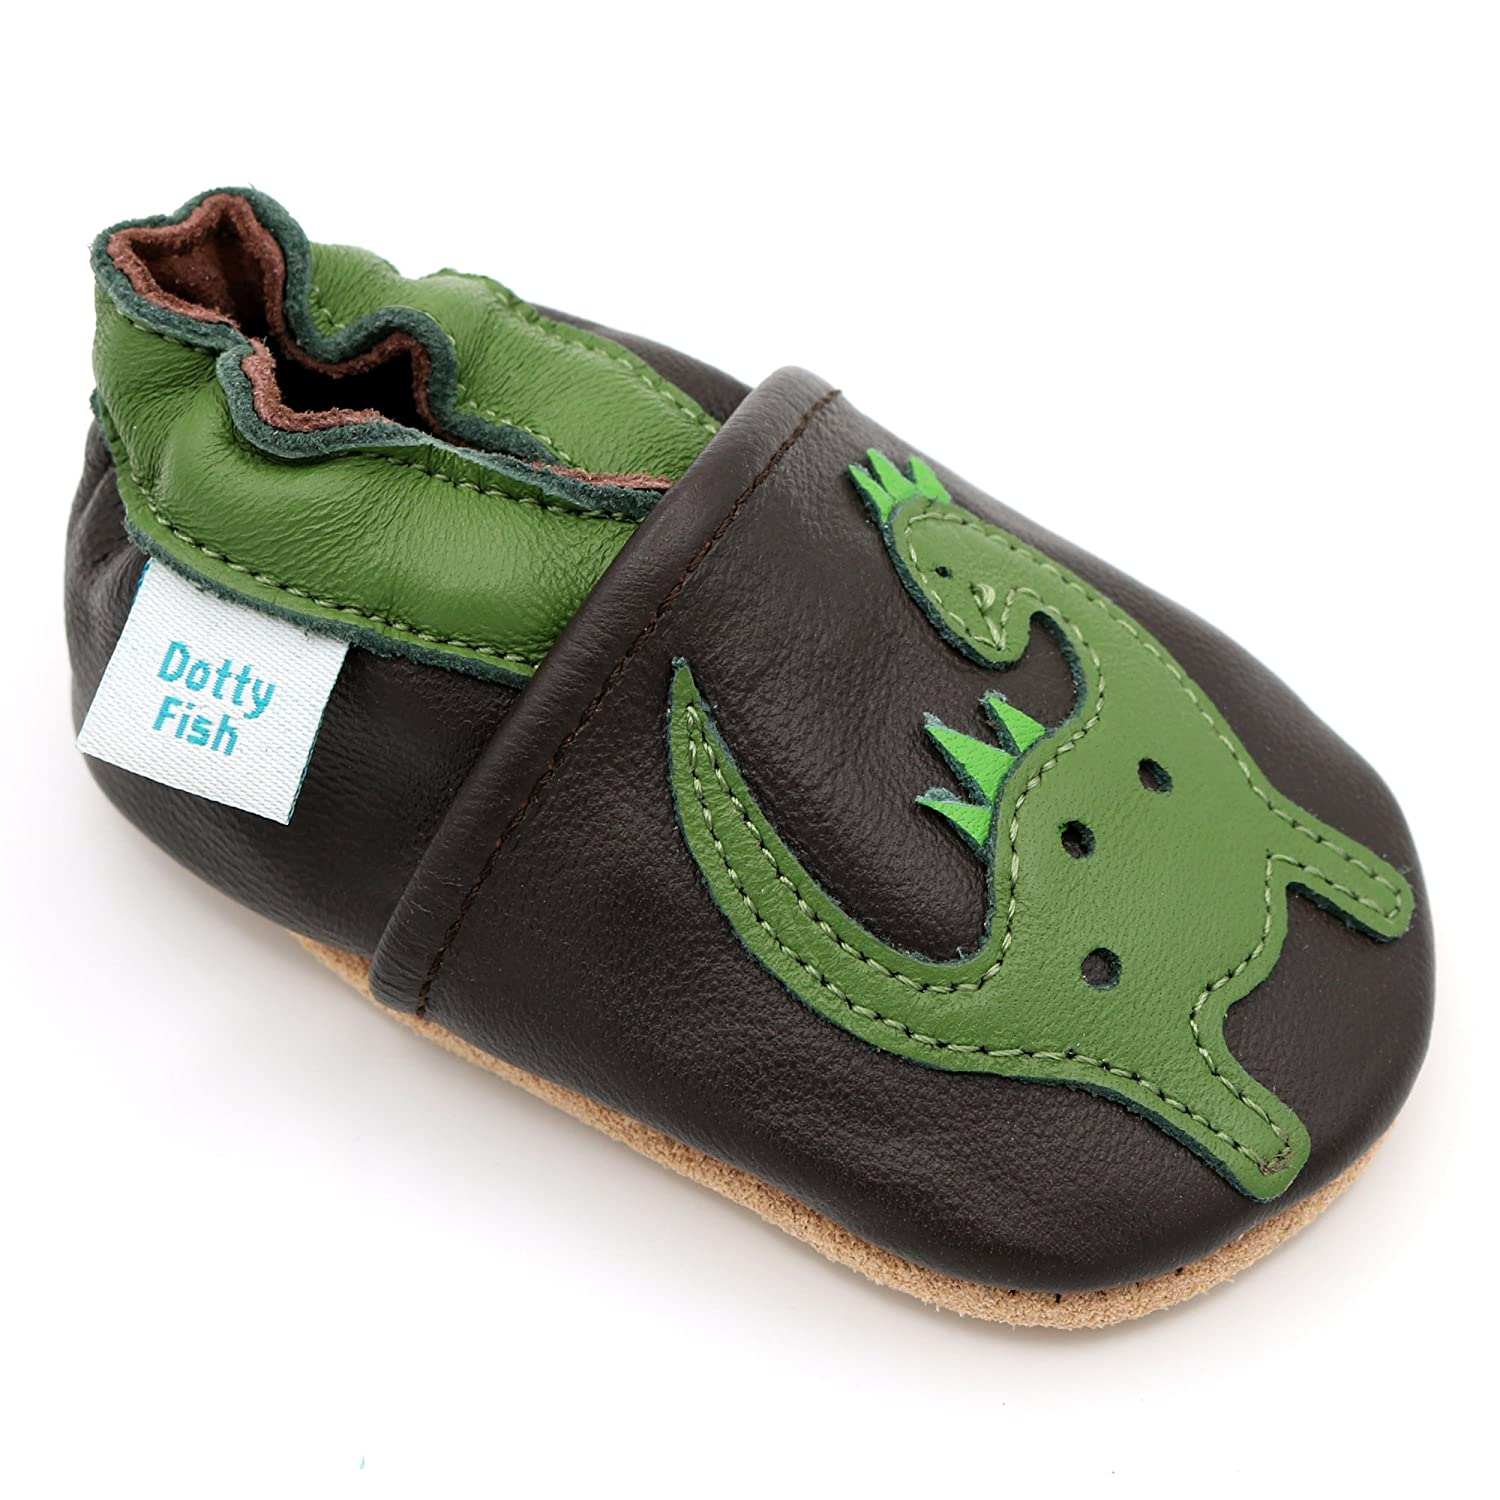 Dotty Fish Soft Leather Baby Shoes Non Slip Suede Soles. Toddler Shoes. Animal, Transport Star Designs Boys. Newborn to 4-5 Years FBA-COHEARTS-P